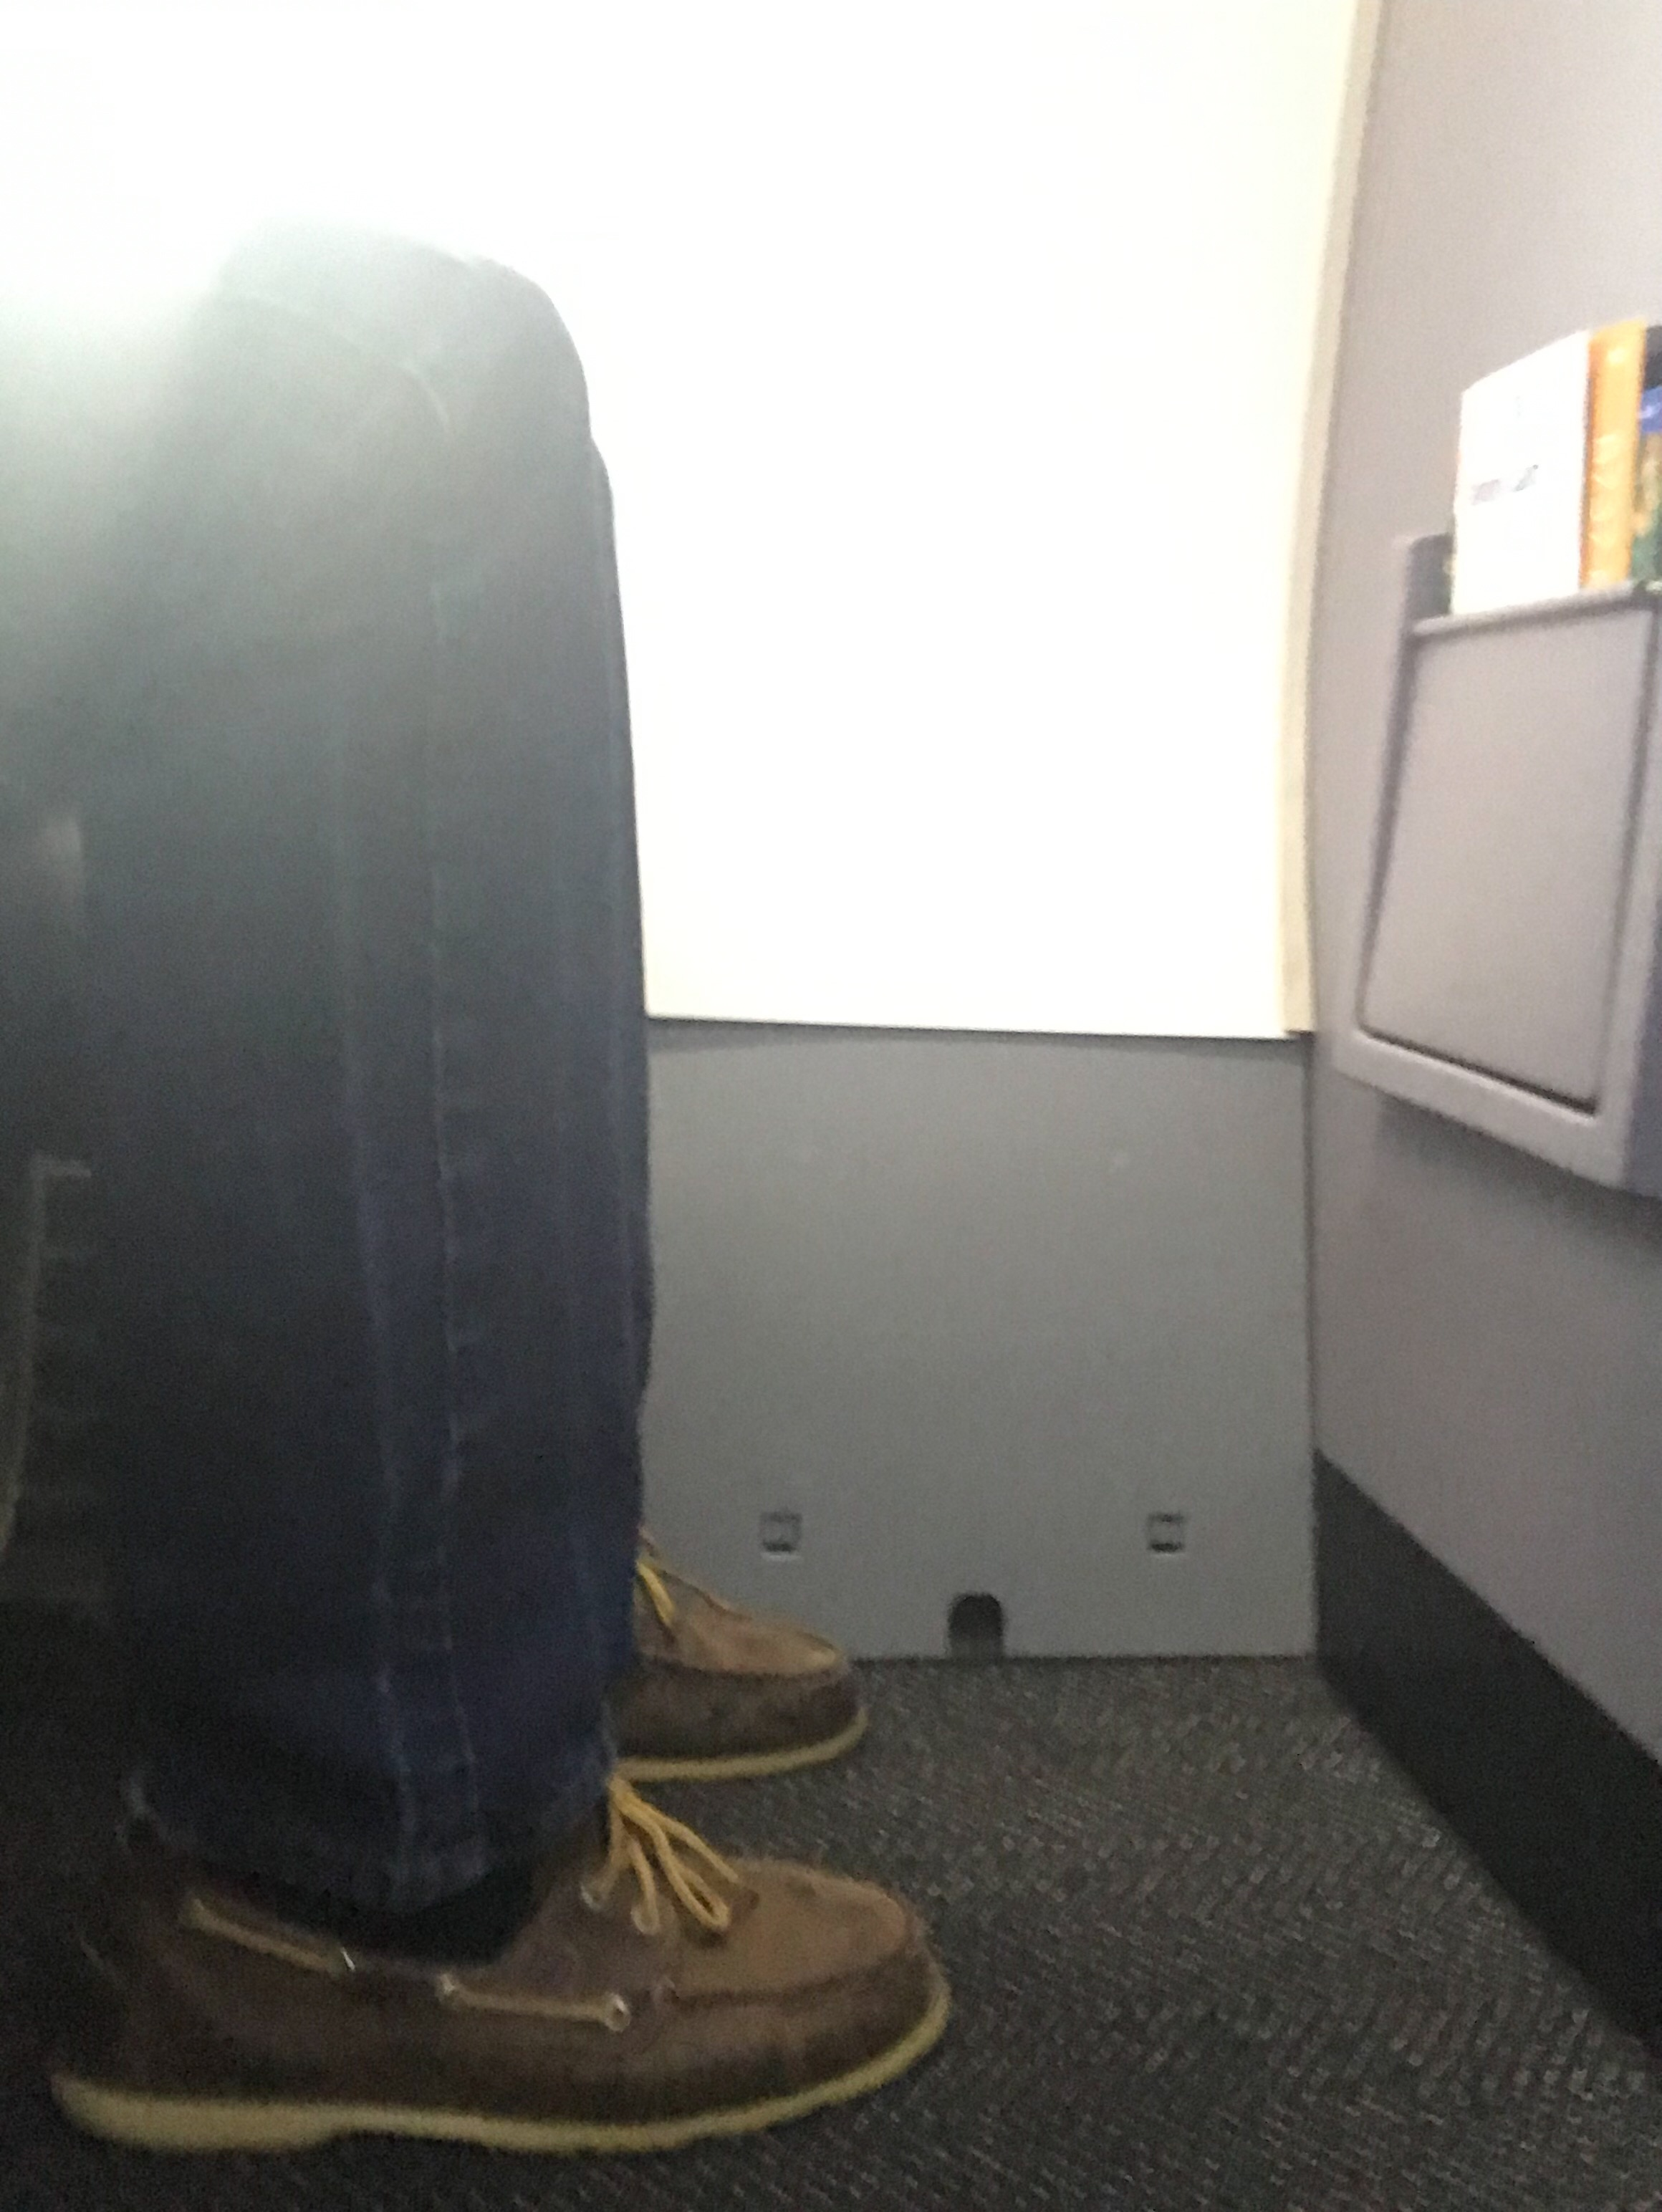 The best legroom on the plane.